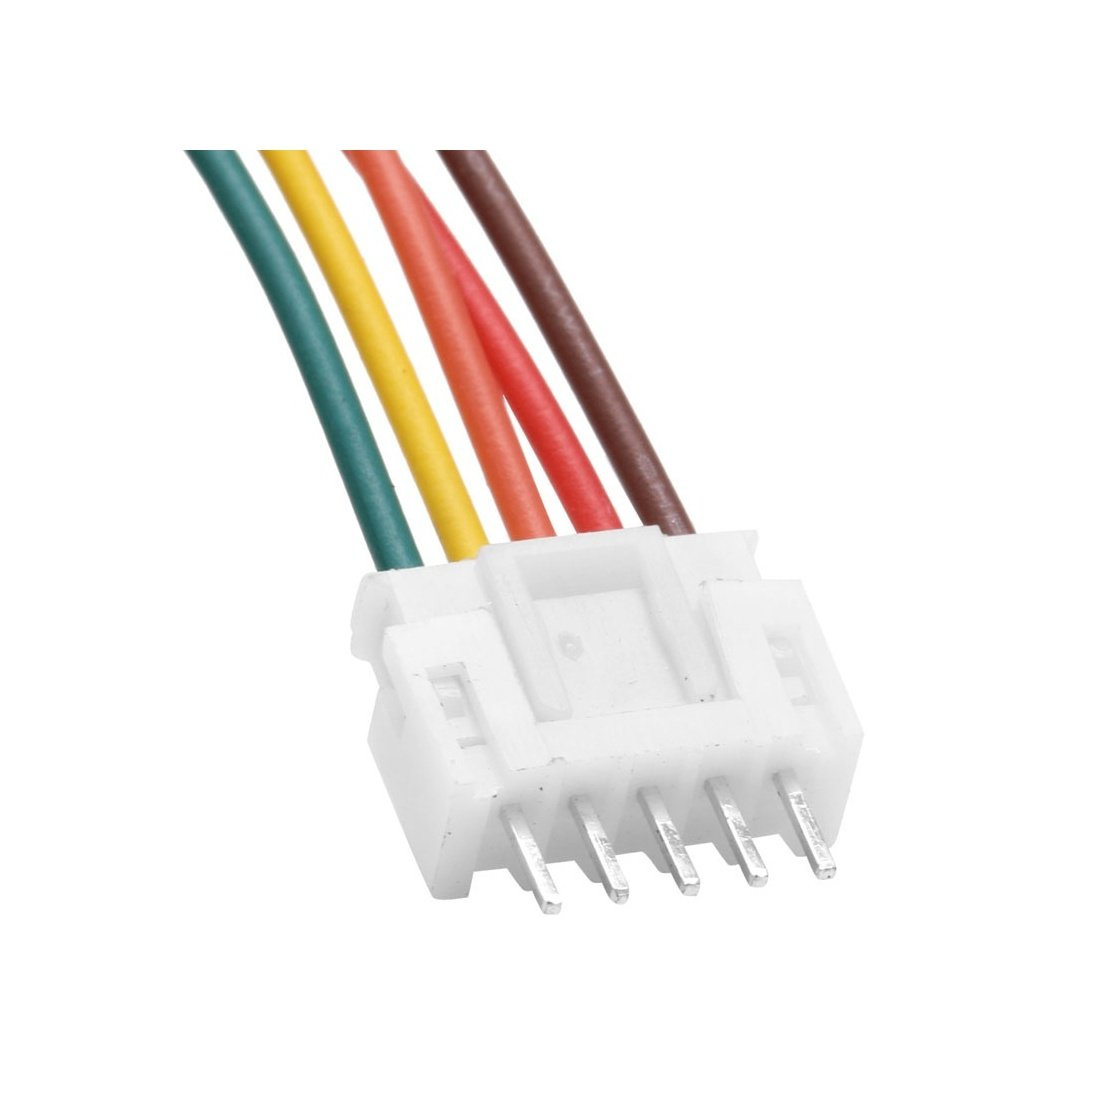 jst ph series 5 pin connector with cable. Black Bedroom Furniture Sets. Home Design Ideas